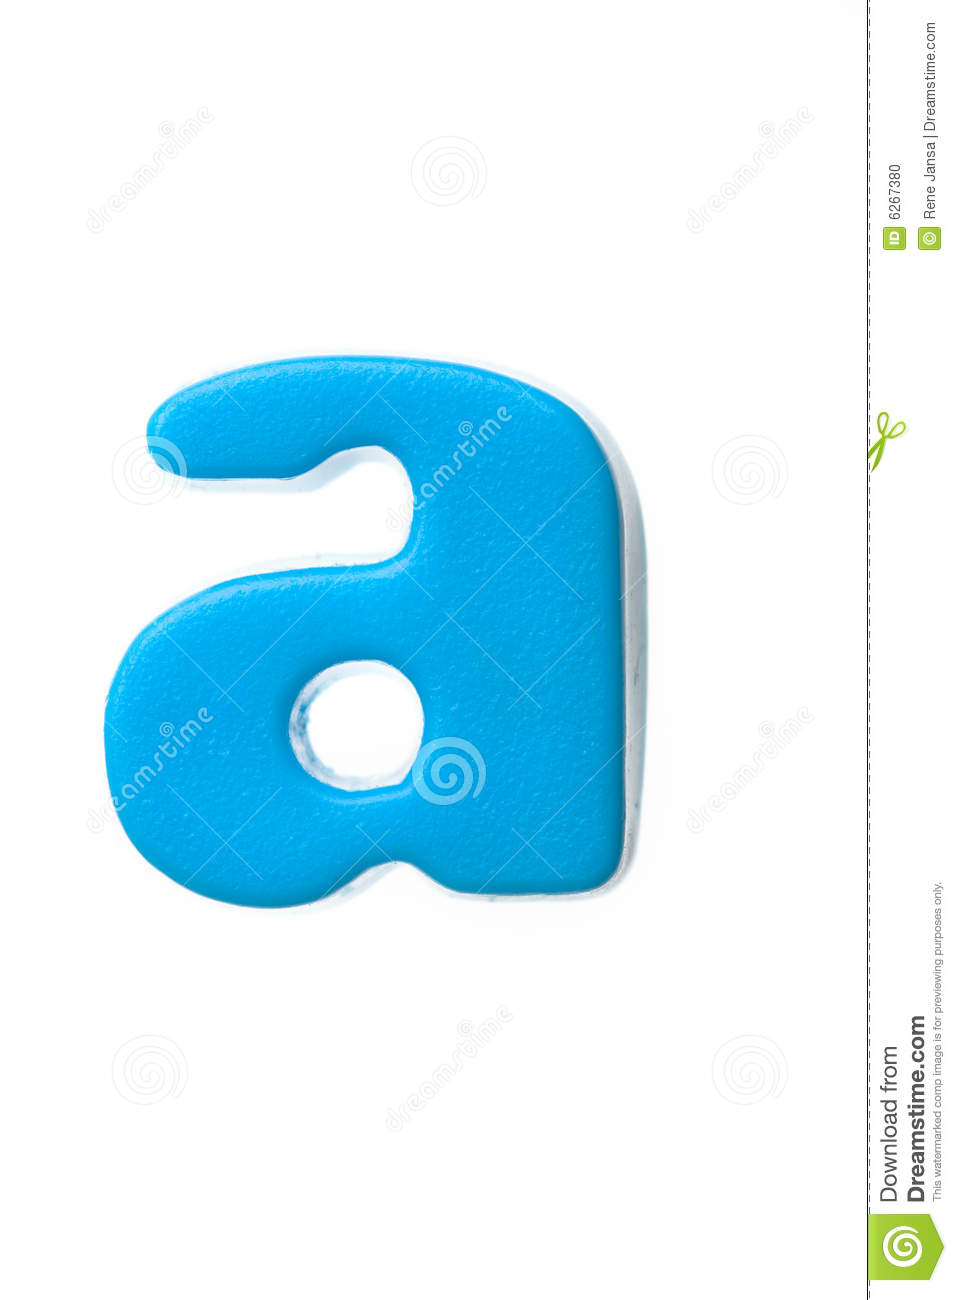 Blue Letter A Stock Photo - Image: 6267380